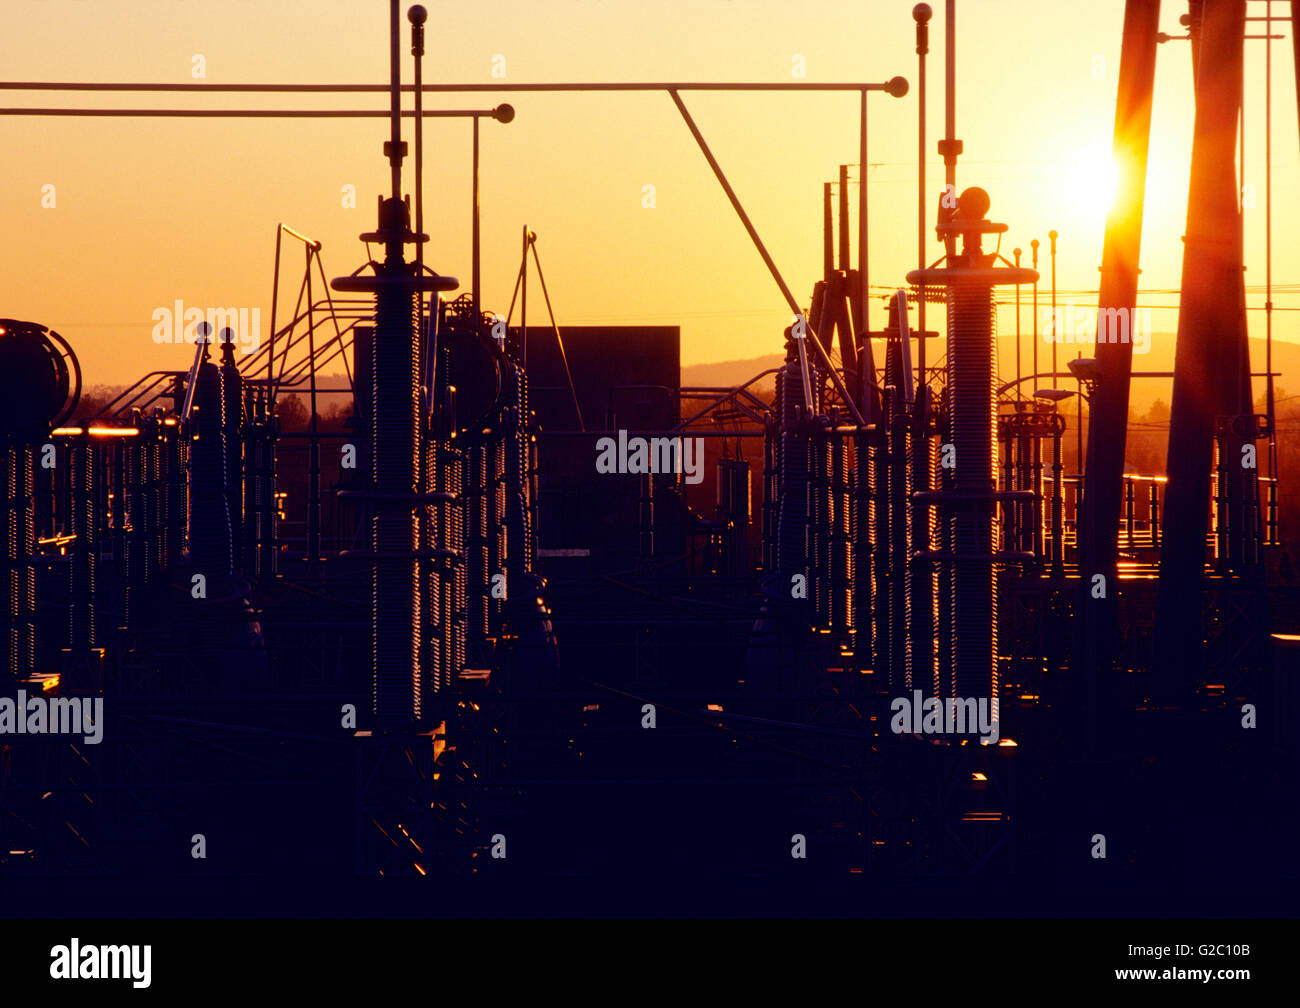 Electrical transmission yard at sunset, Limerick Nuclear Power Plant, Limerick, Pennsylvania, USA - Stock Image